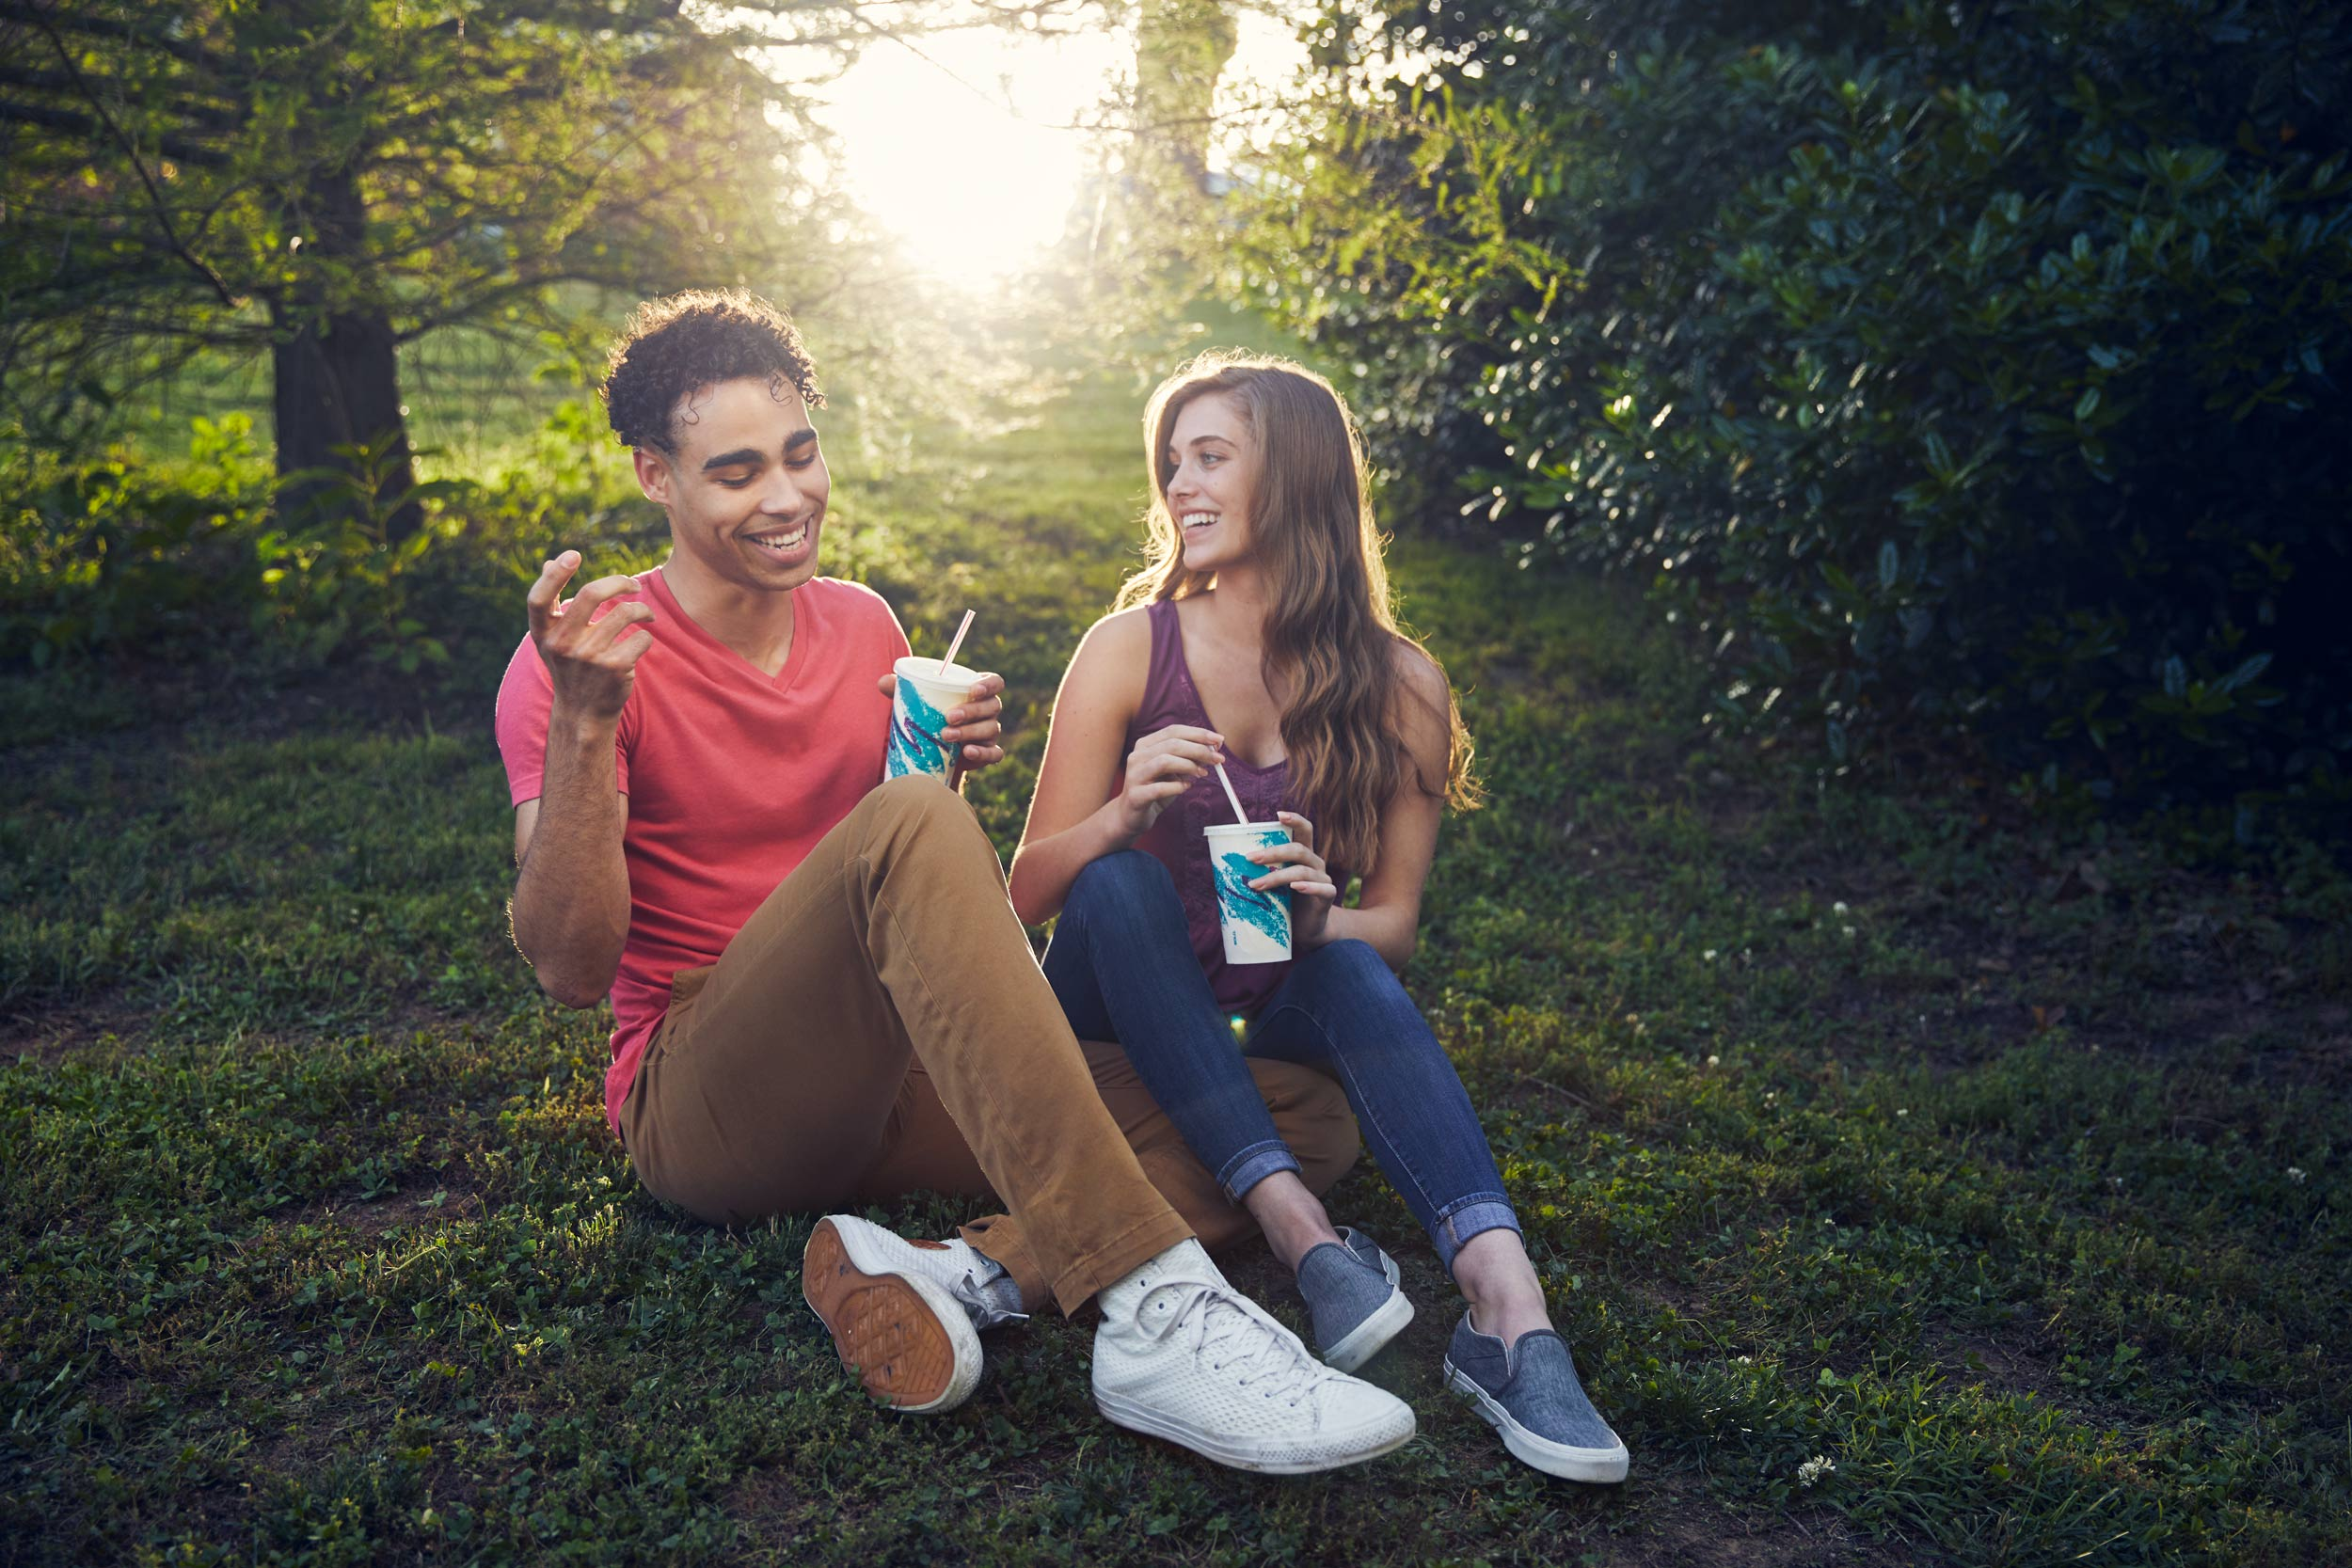 millennials sharing milkshake in park for washington dc commercial photography